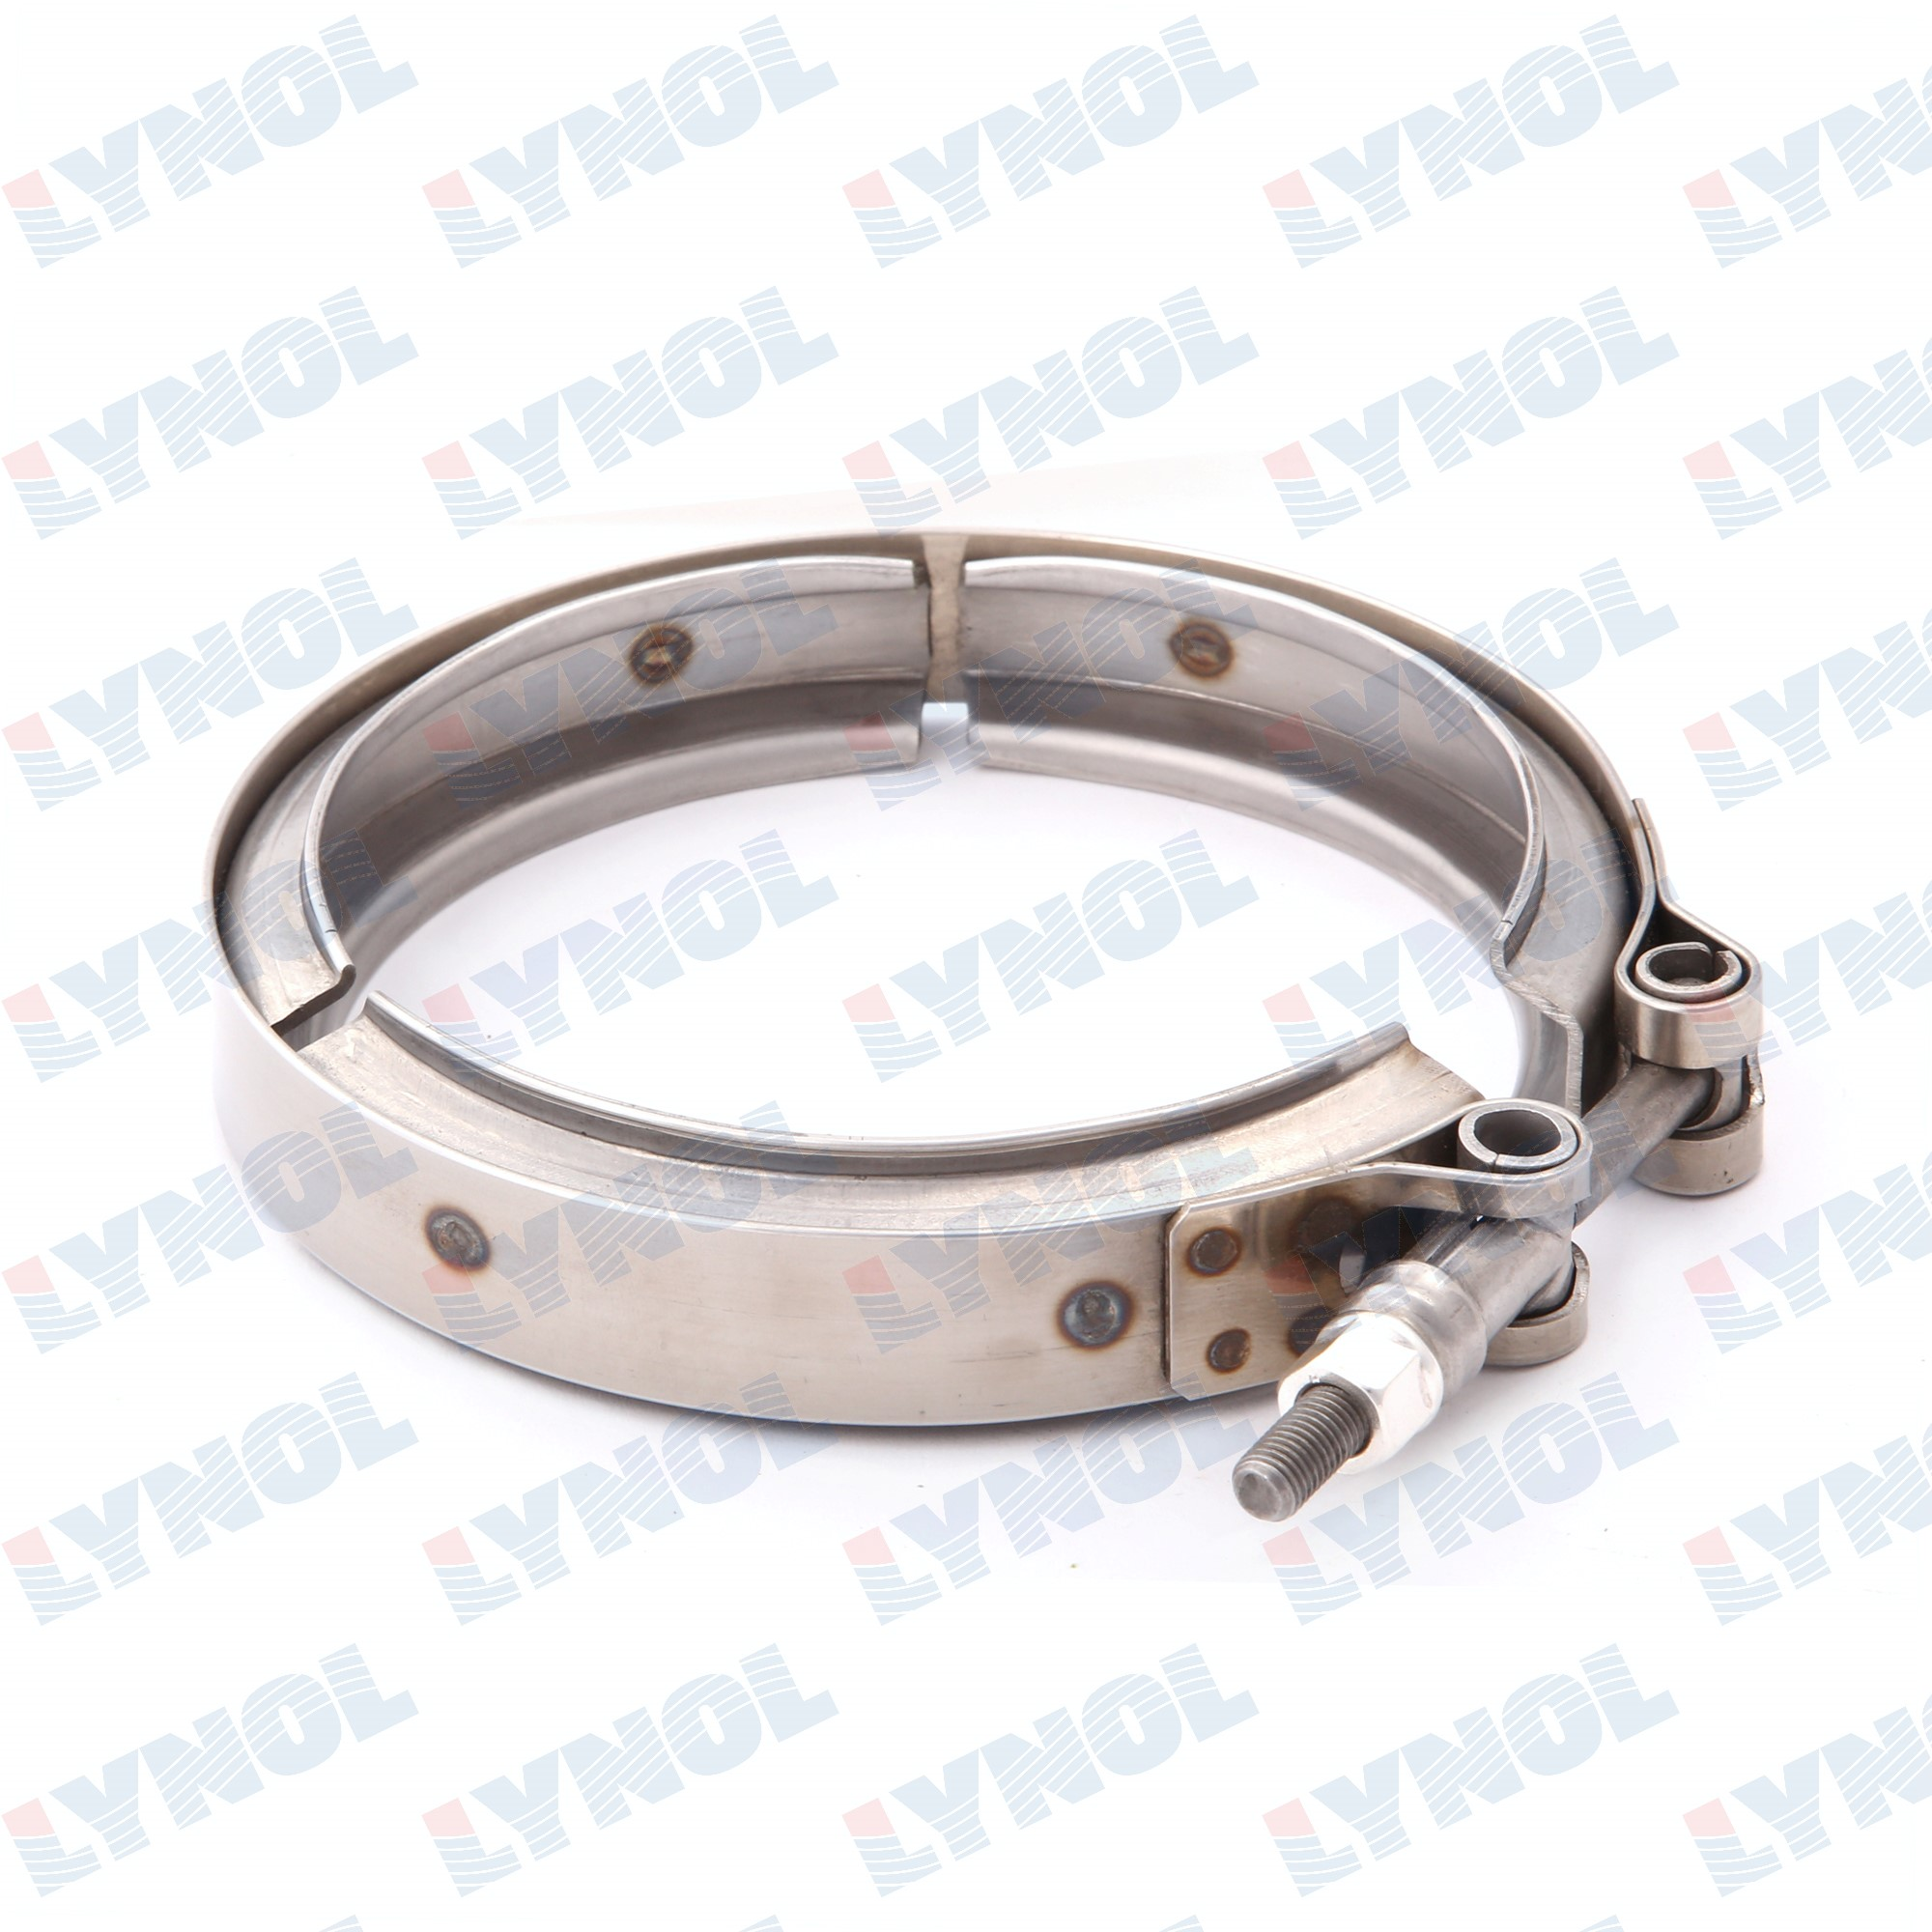 "4502011 - CLAMP - Cummins 3896337/ Mack 21048521 4"" V-band Clamp"